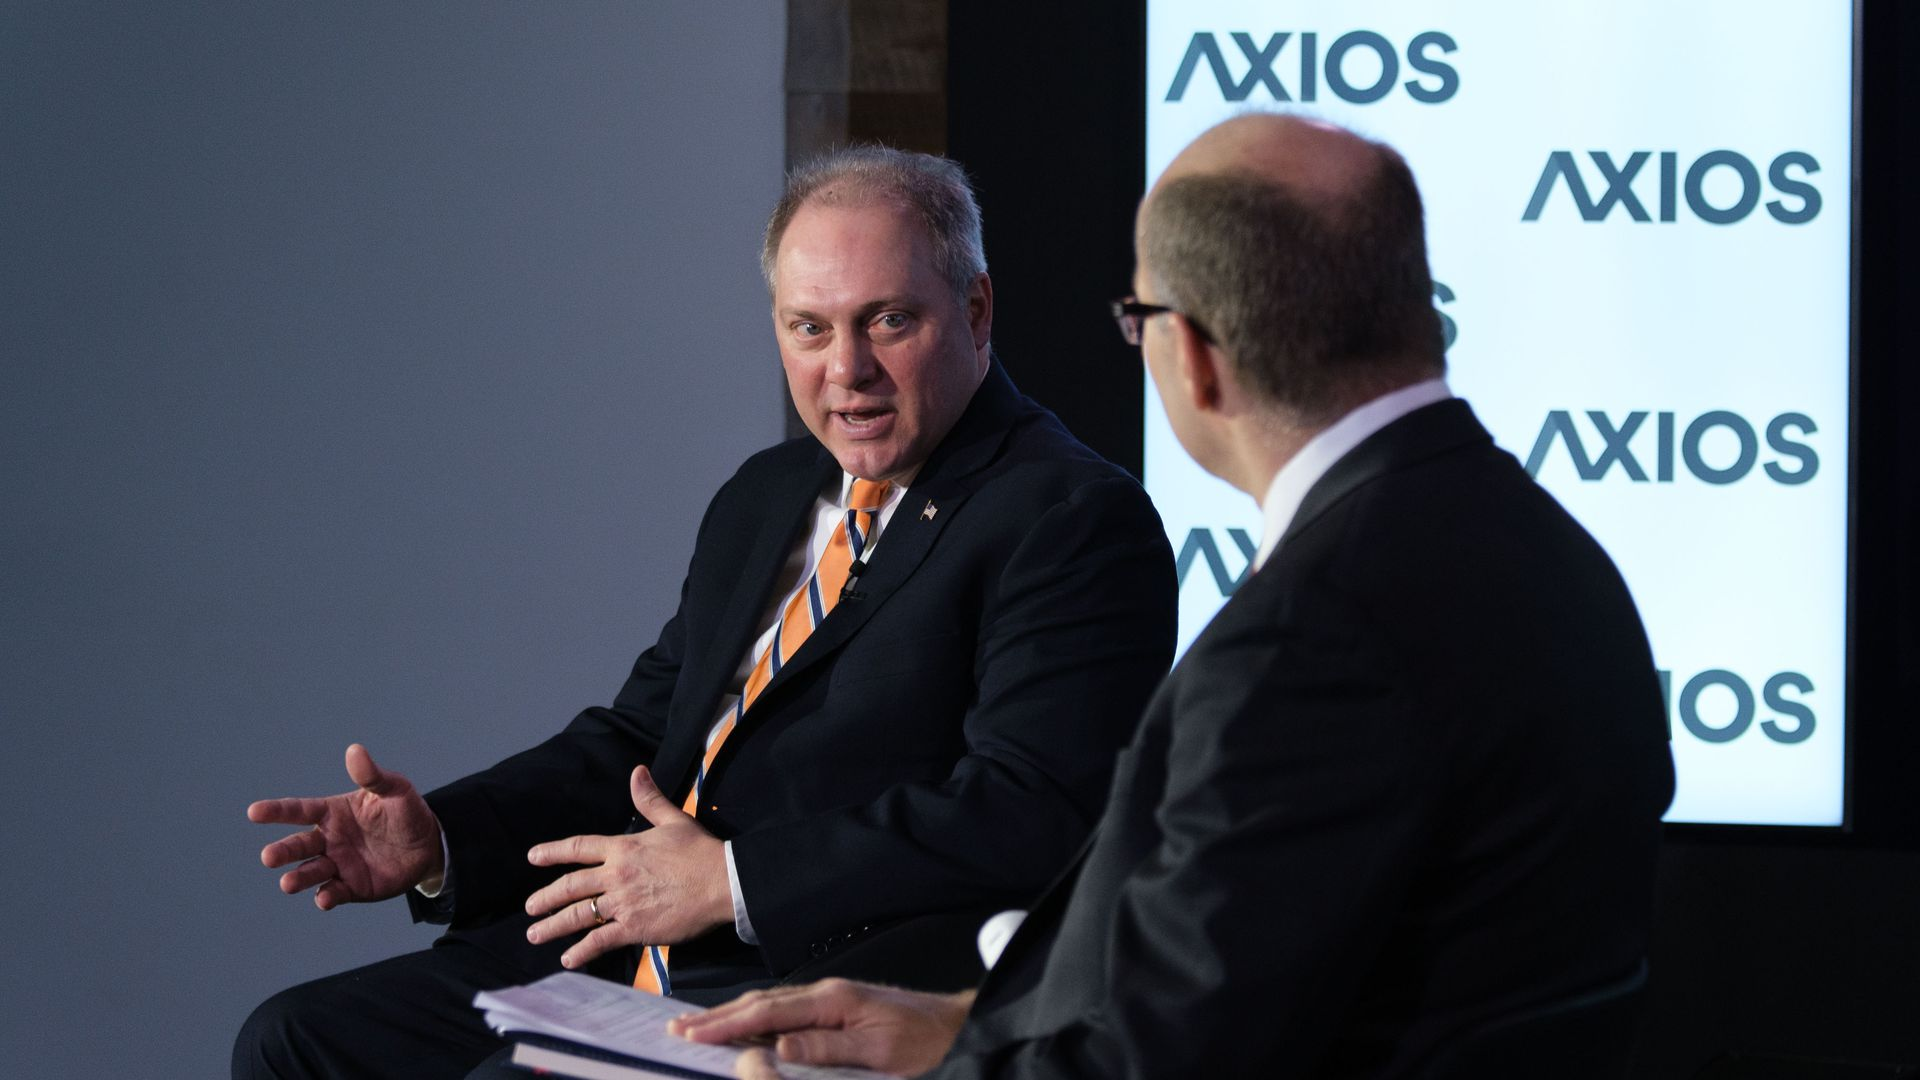 Steve Scalise at an Axios event talking with Mike Allen.